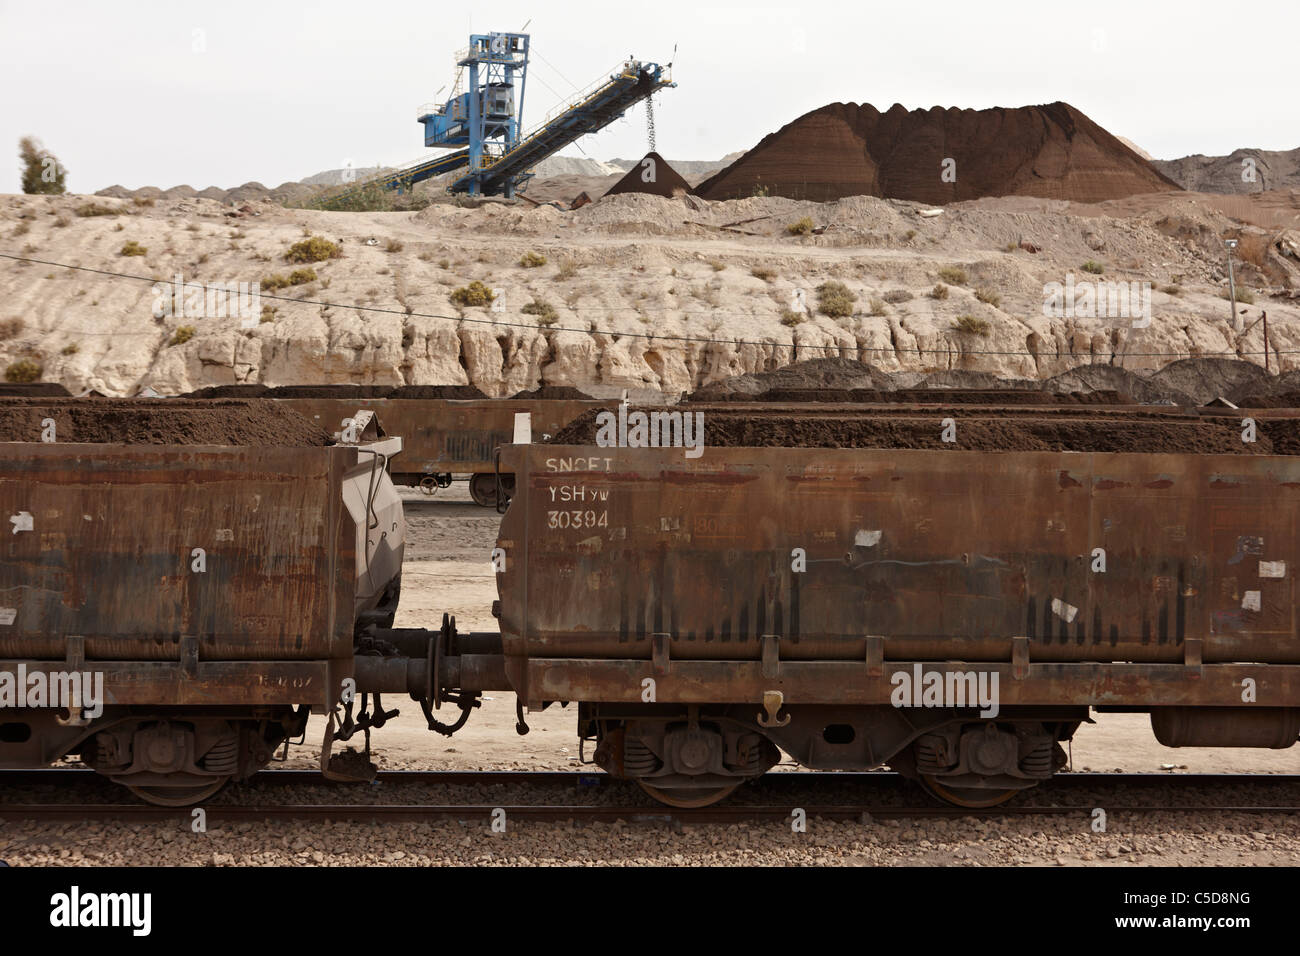 Travel Tunisia.Freight Waggons at the phosphate mines of Seldja. - Stock Image